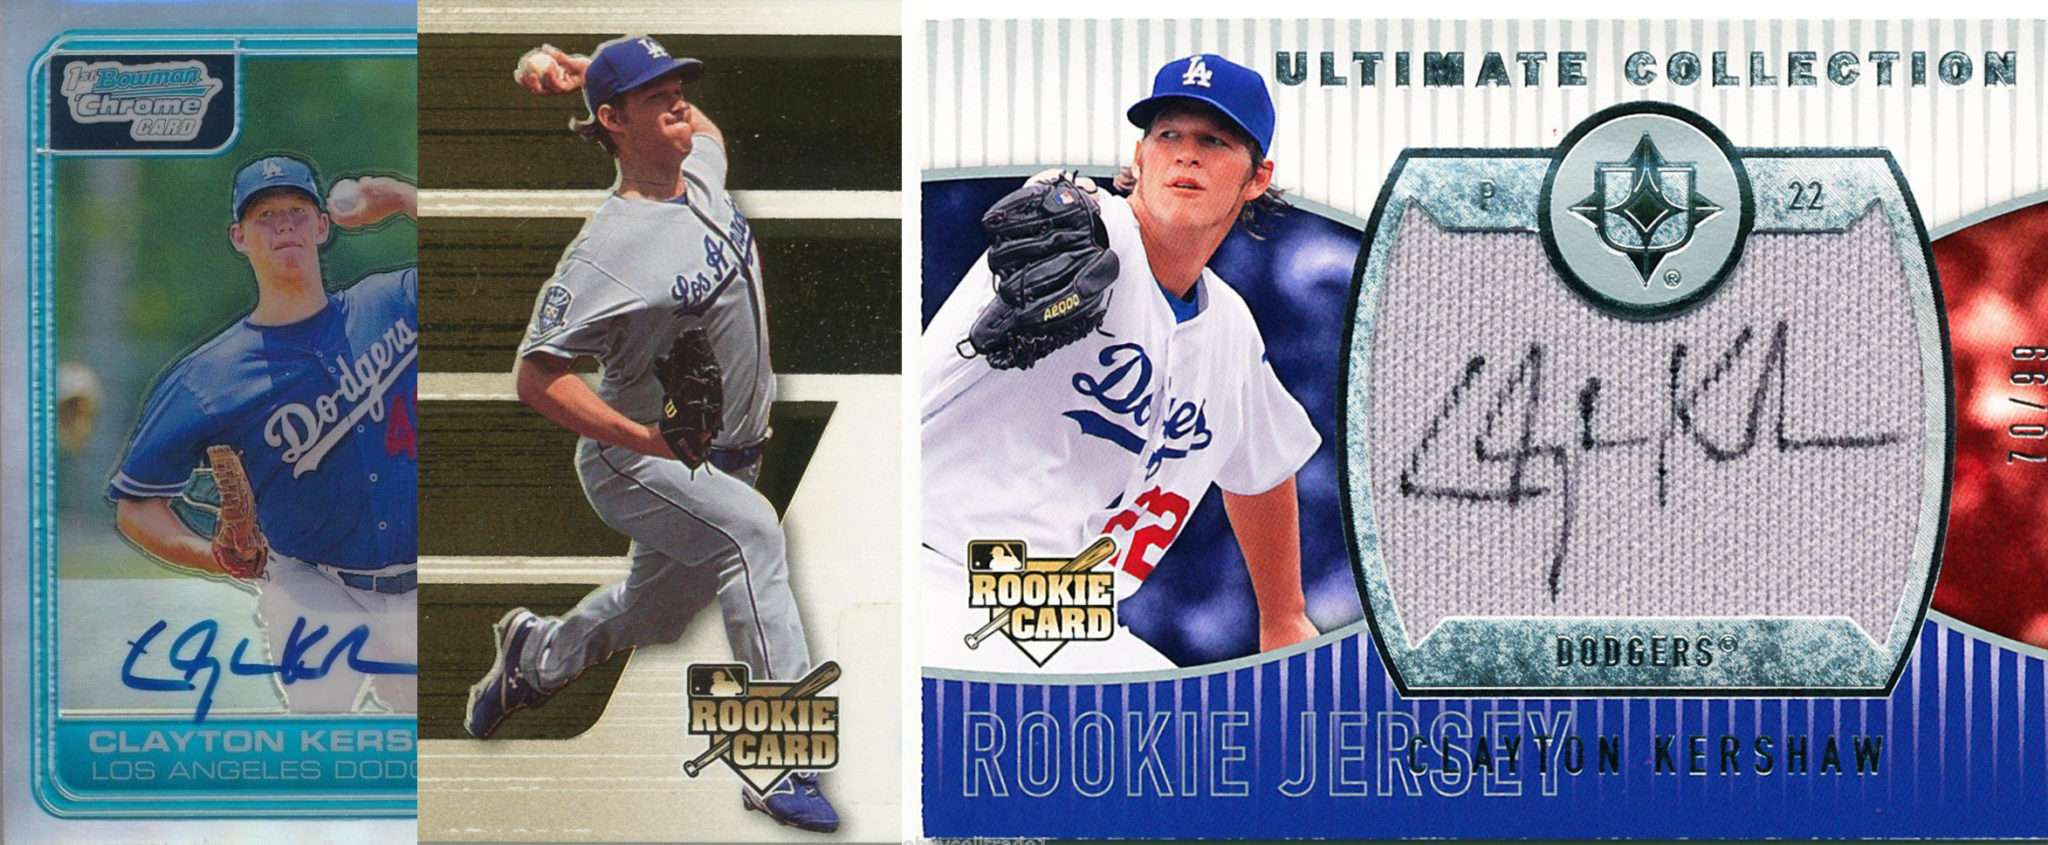 Clayton Kershaw And His Top 3 Rookie Cards Fivecardguys